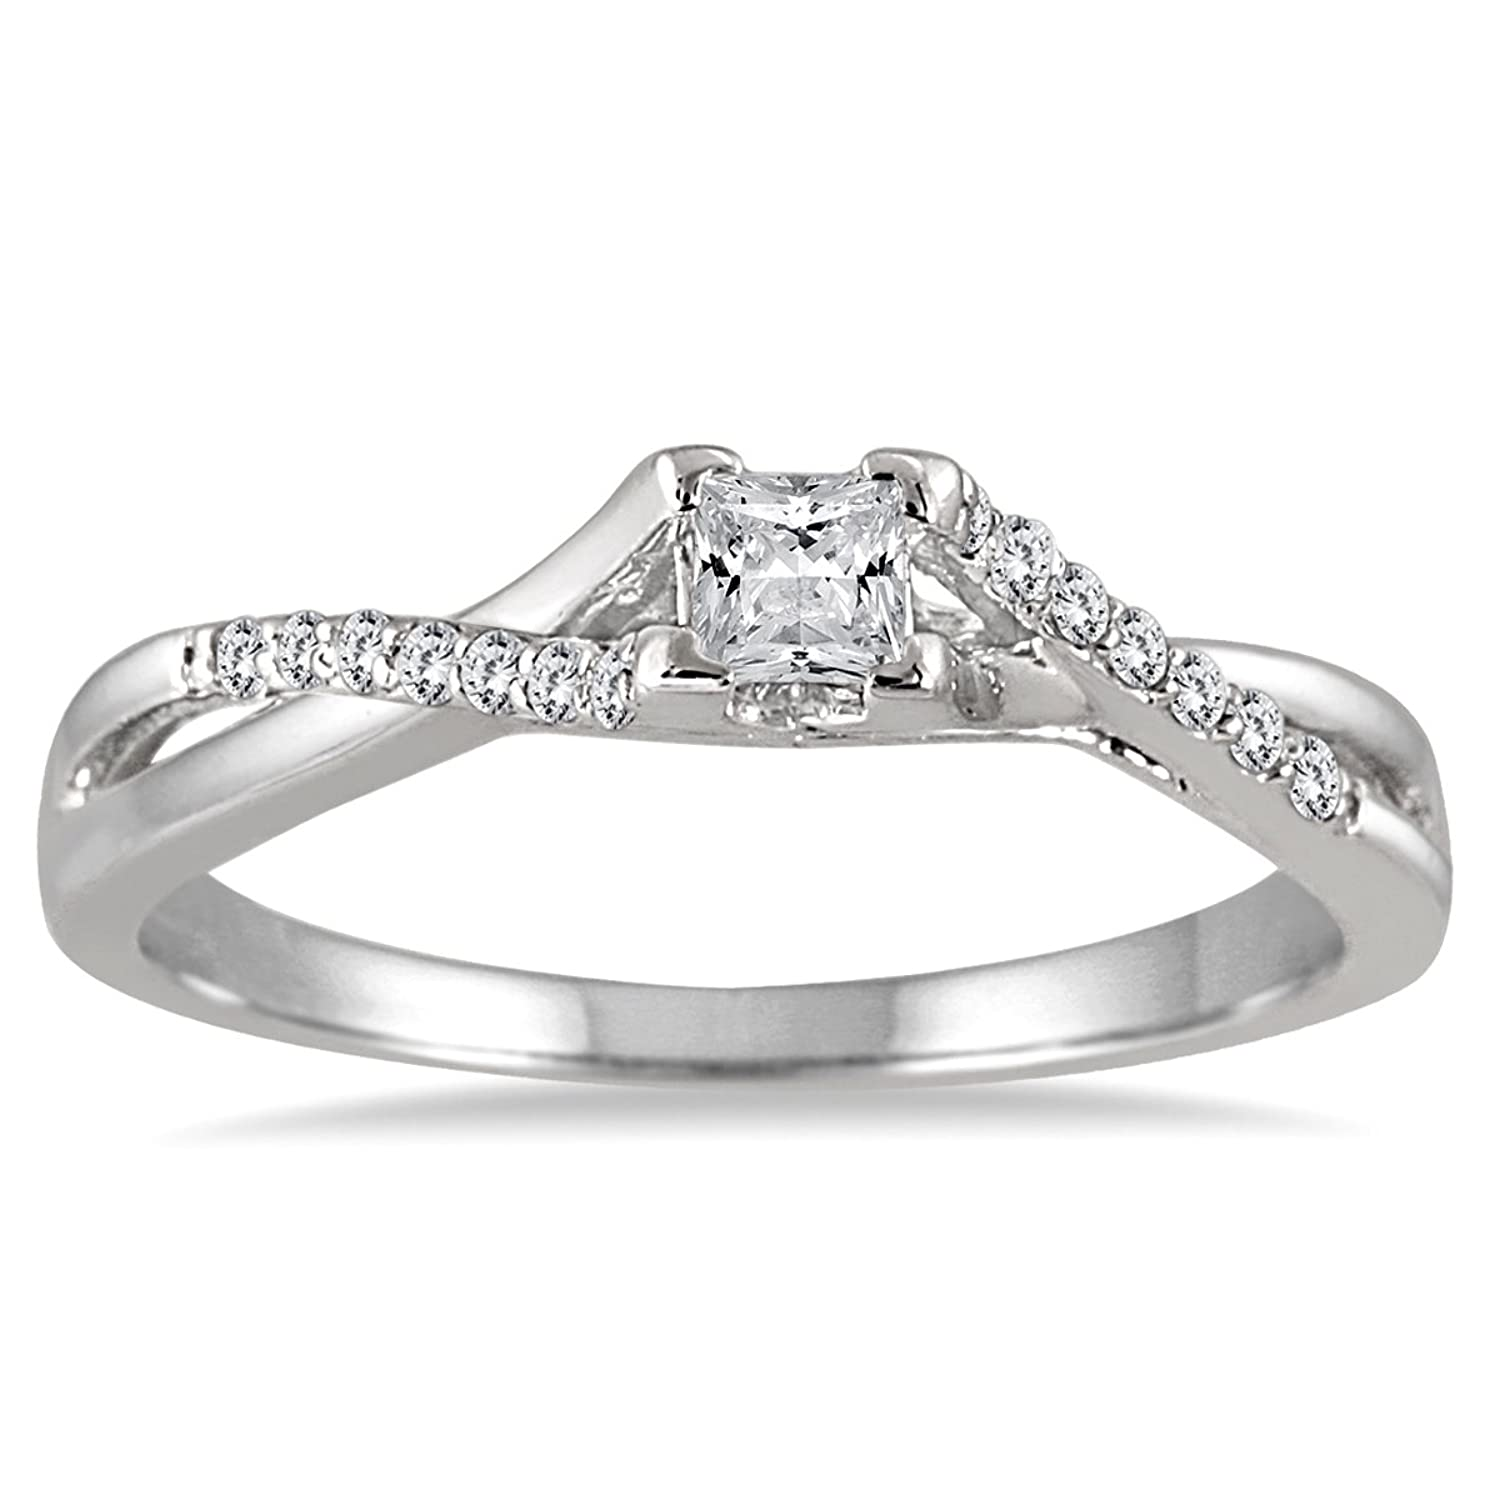 AGS Certified 1 3 Carat TW Princess Cut Diamond Engagement Ring In 10K White Gold K L Color I2 I3 Clarity